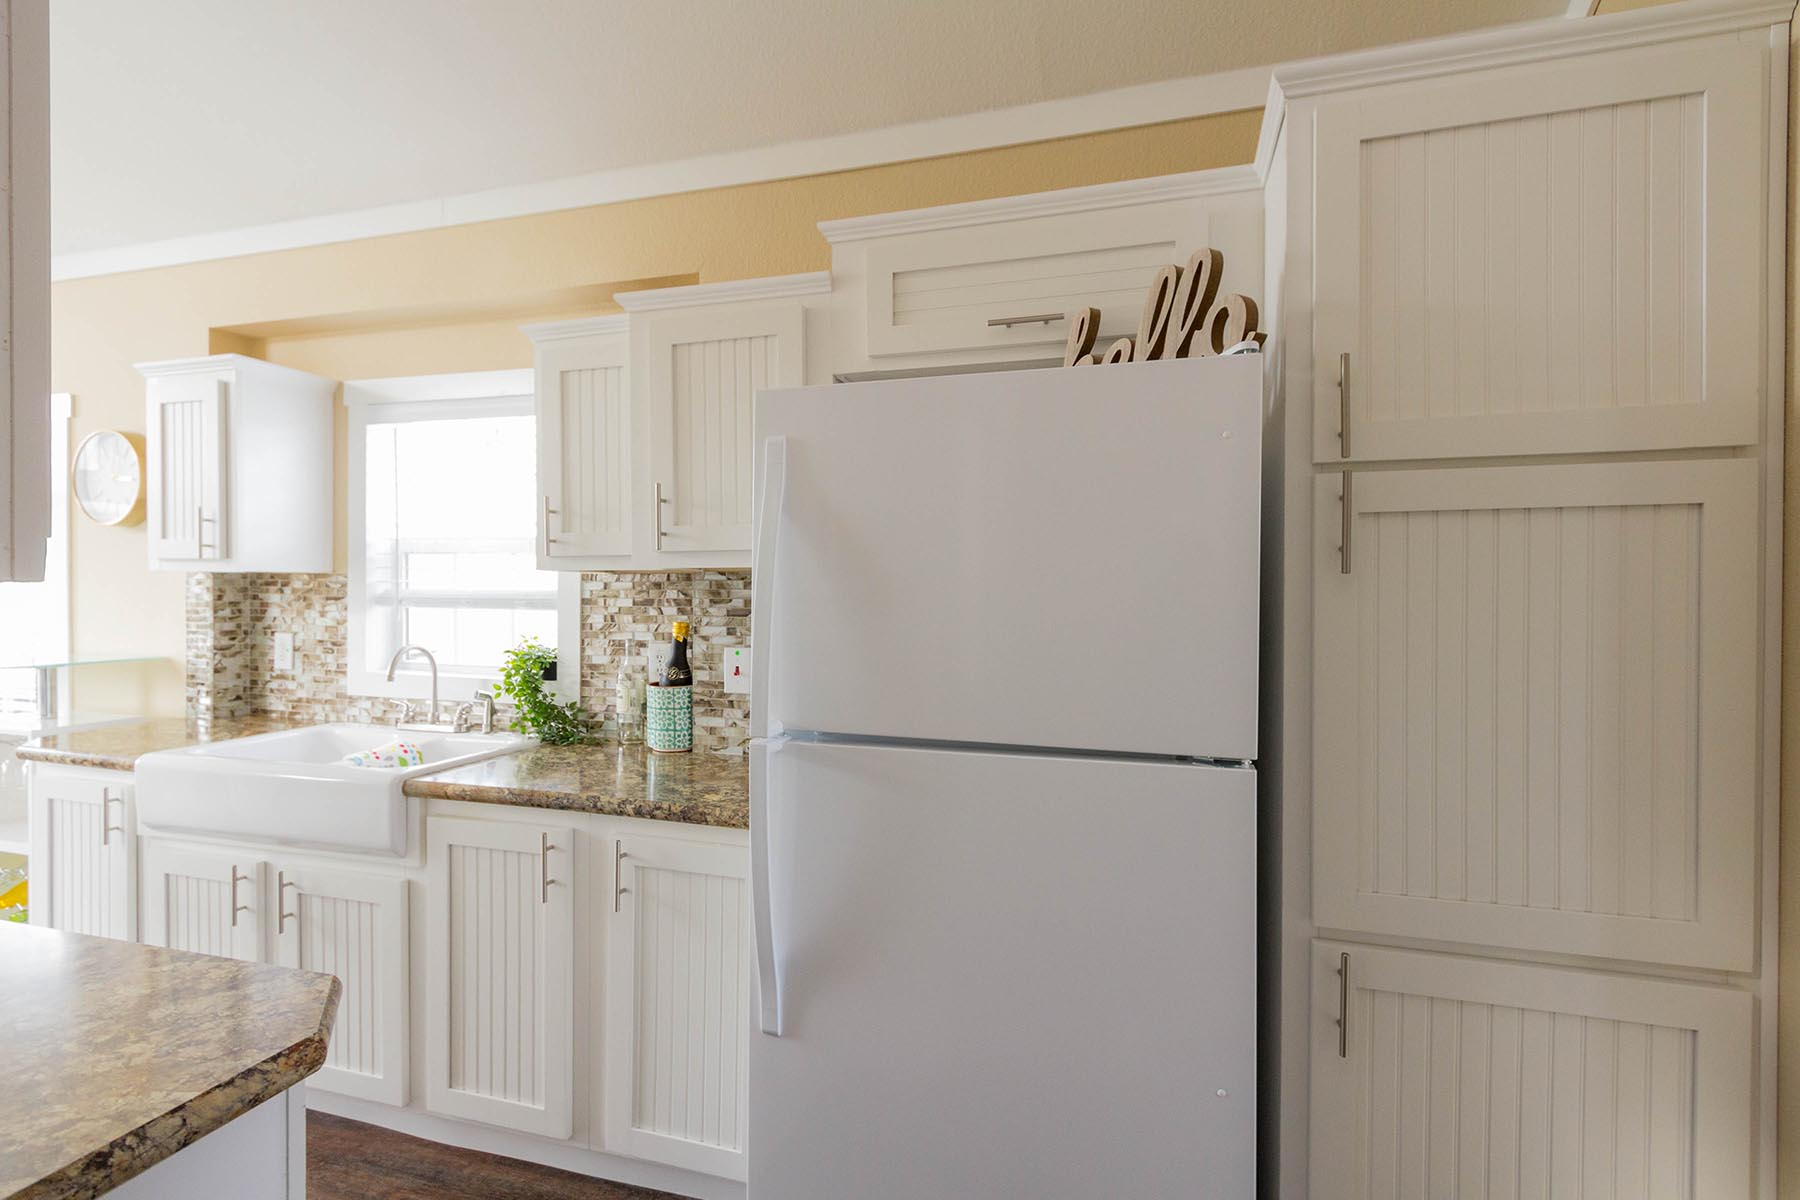 The Malibu APH 505 kitchen 2